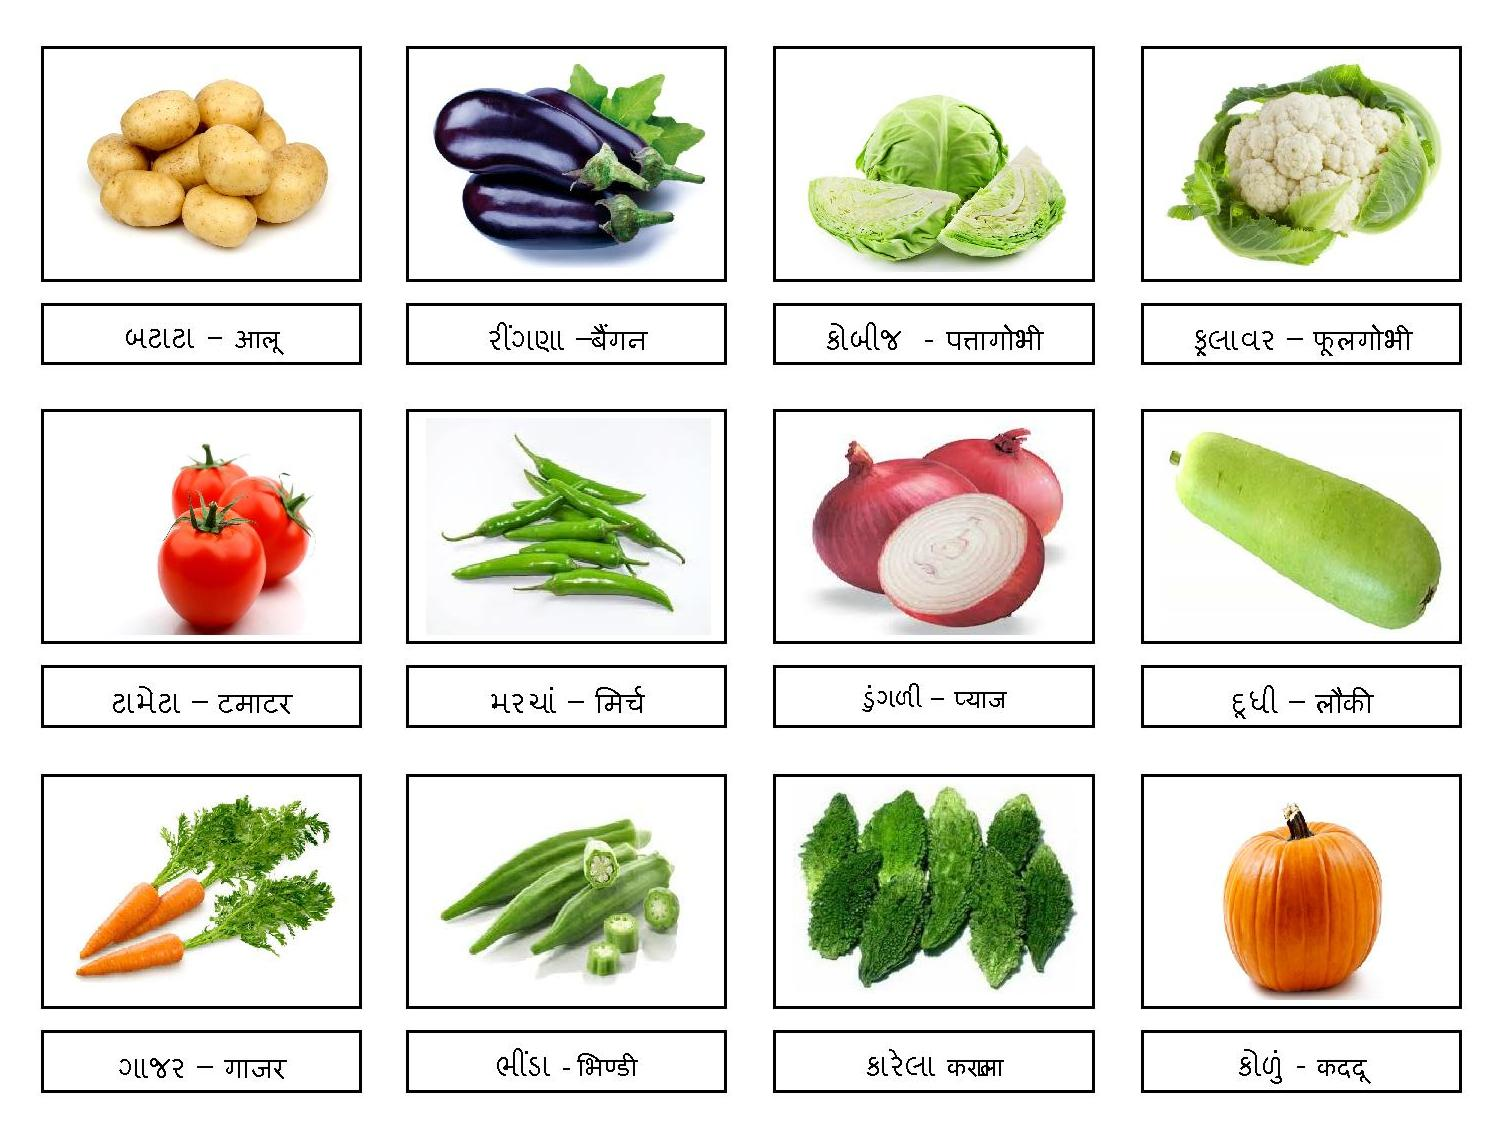 Pin Edusaral Vegetables Name In Gujarati To English 1 on Pinterest